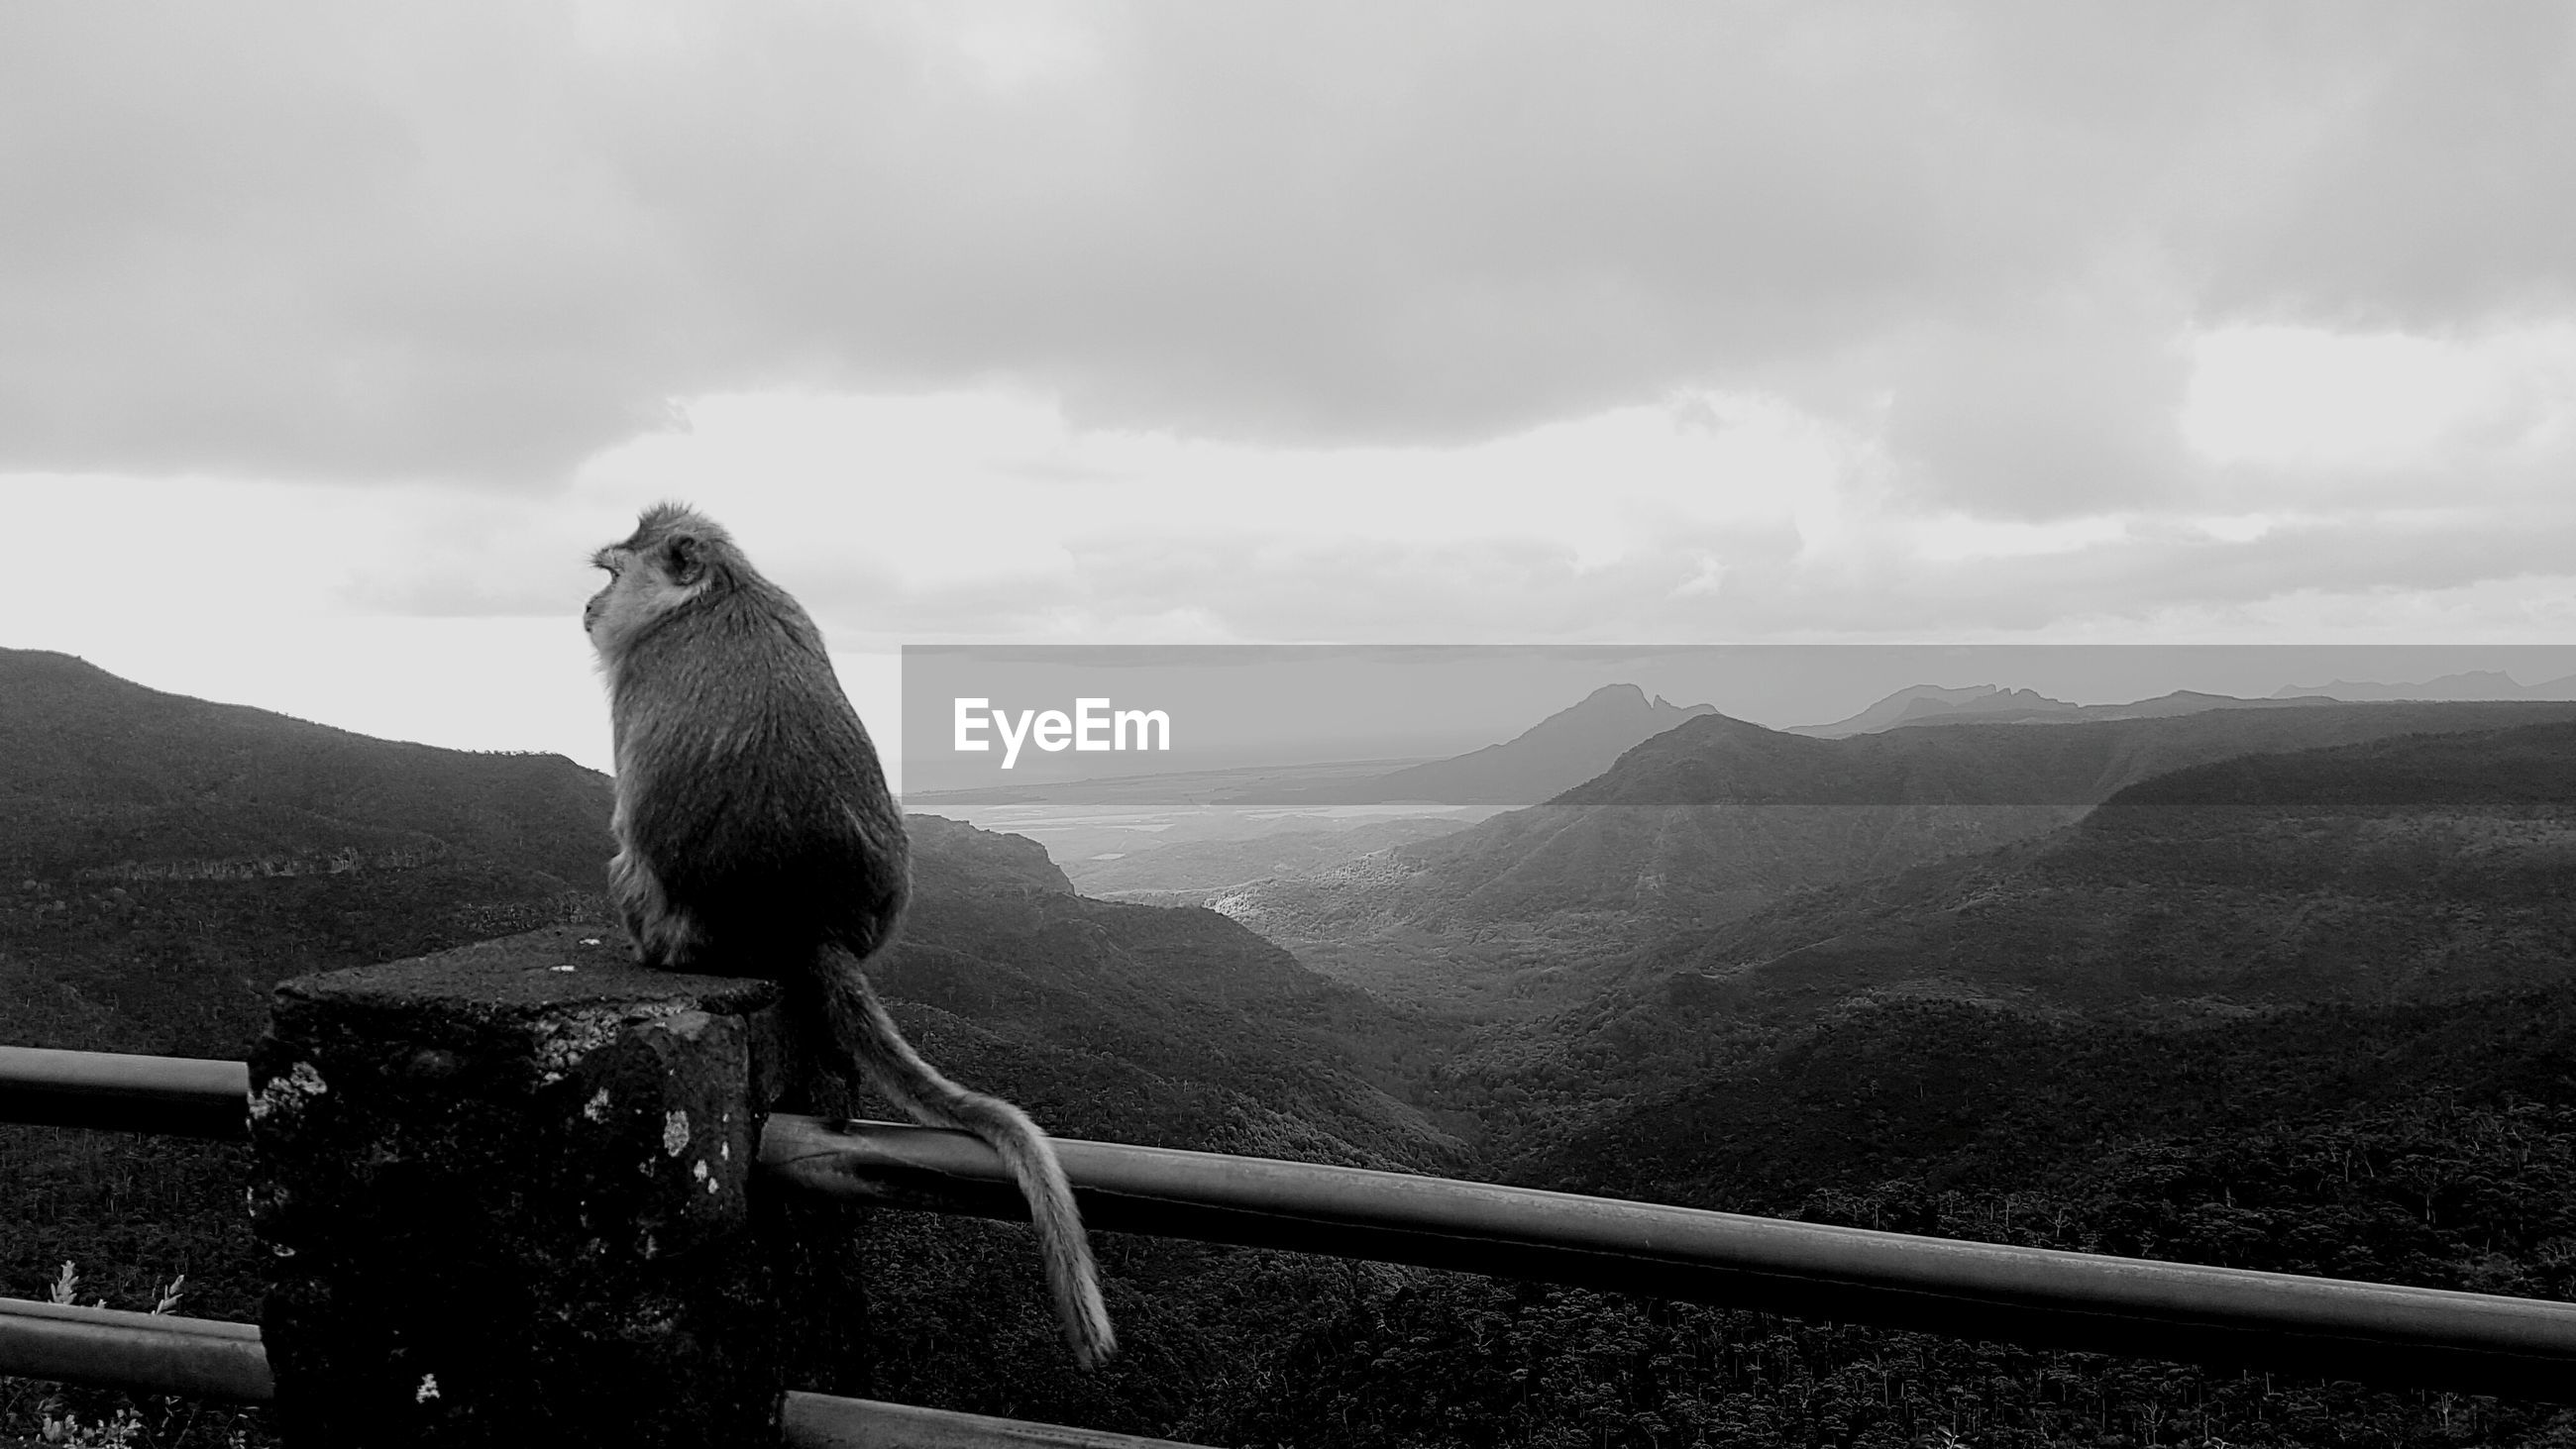 Monkey sitting on railing against mountains